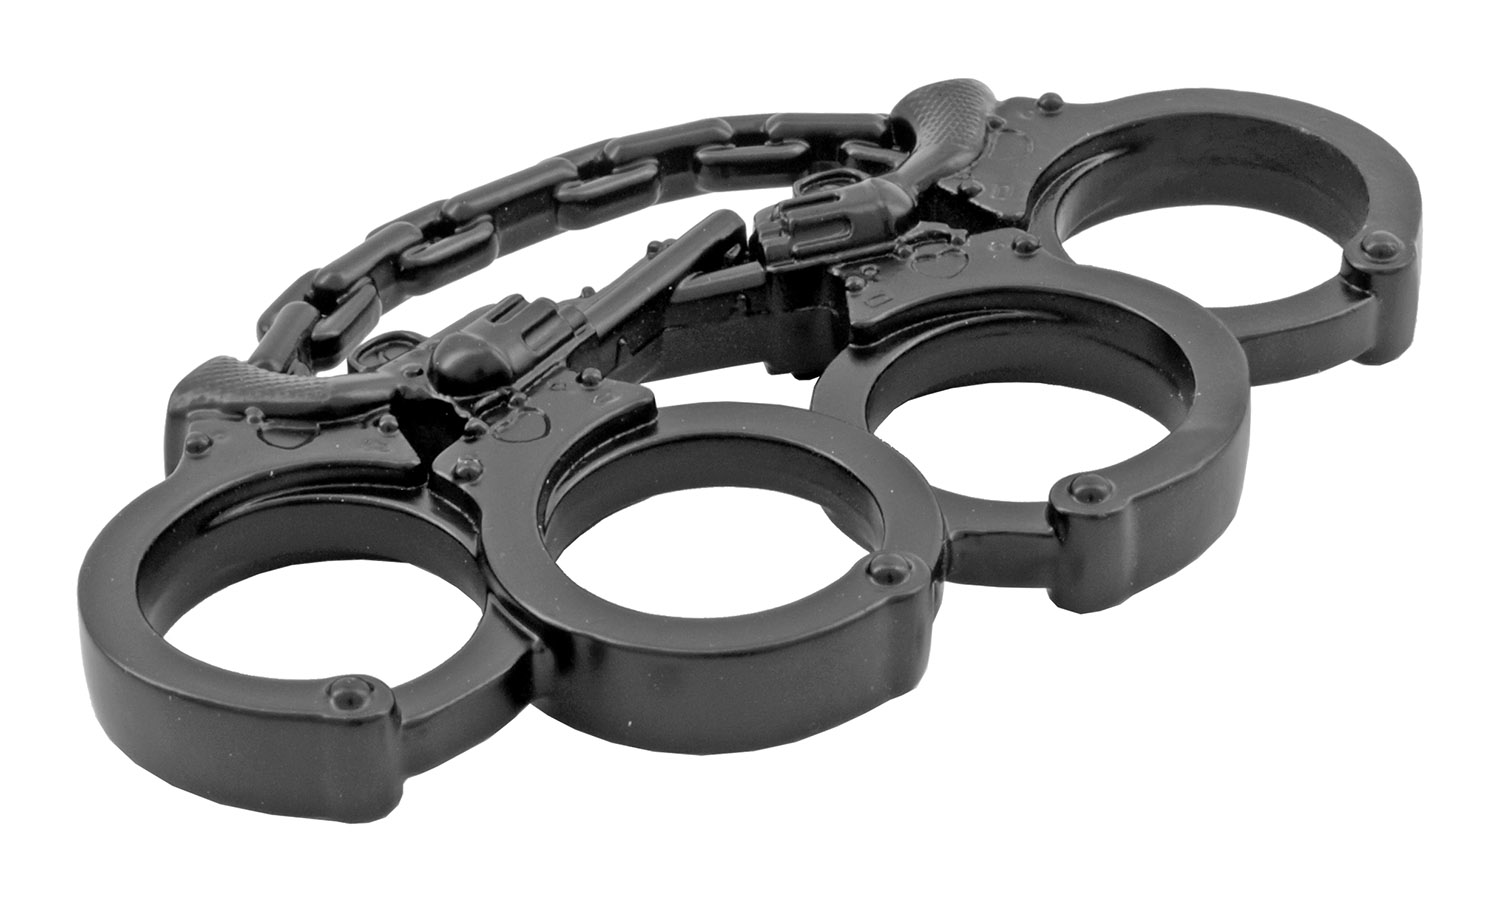 Double Six Shooter Pistol Brass Knuckle Duster Styled Paperweight - Black